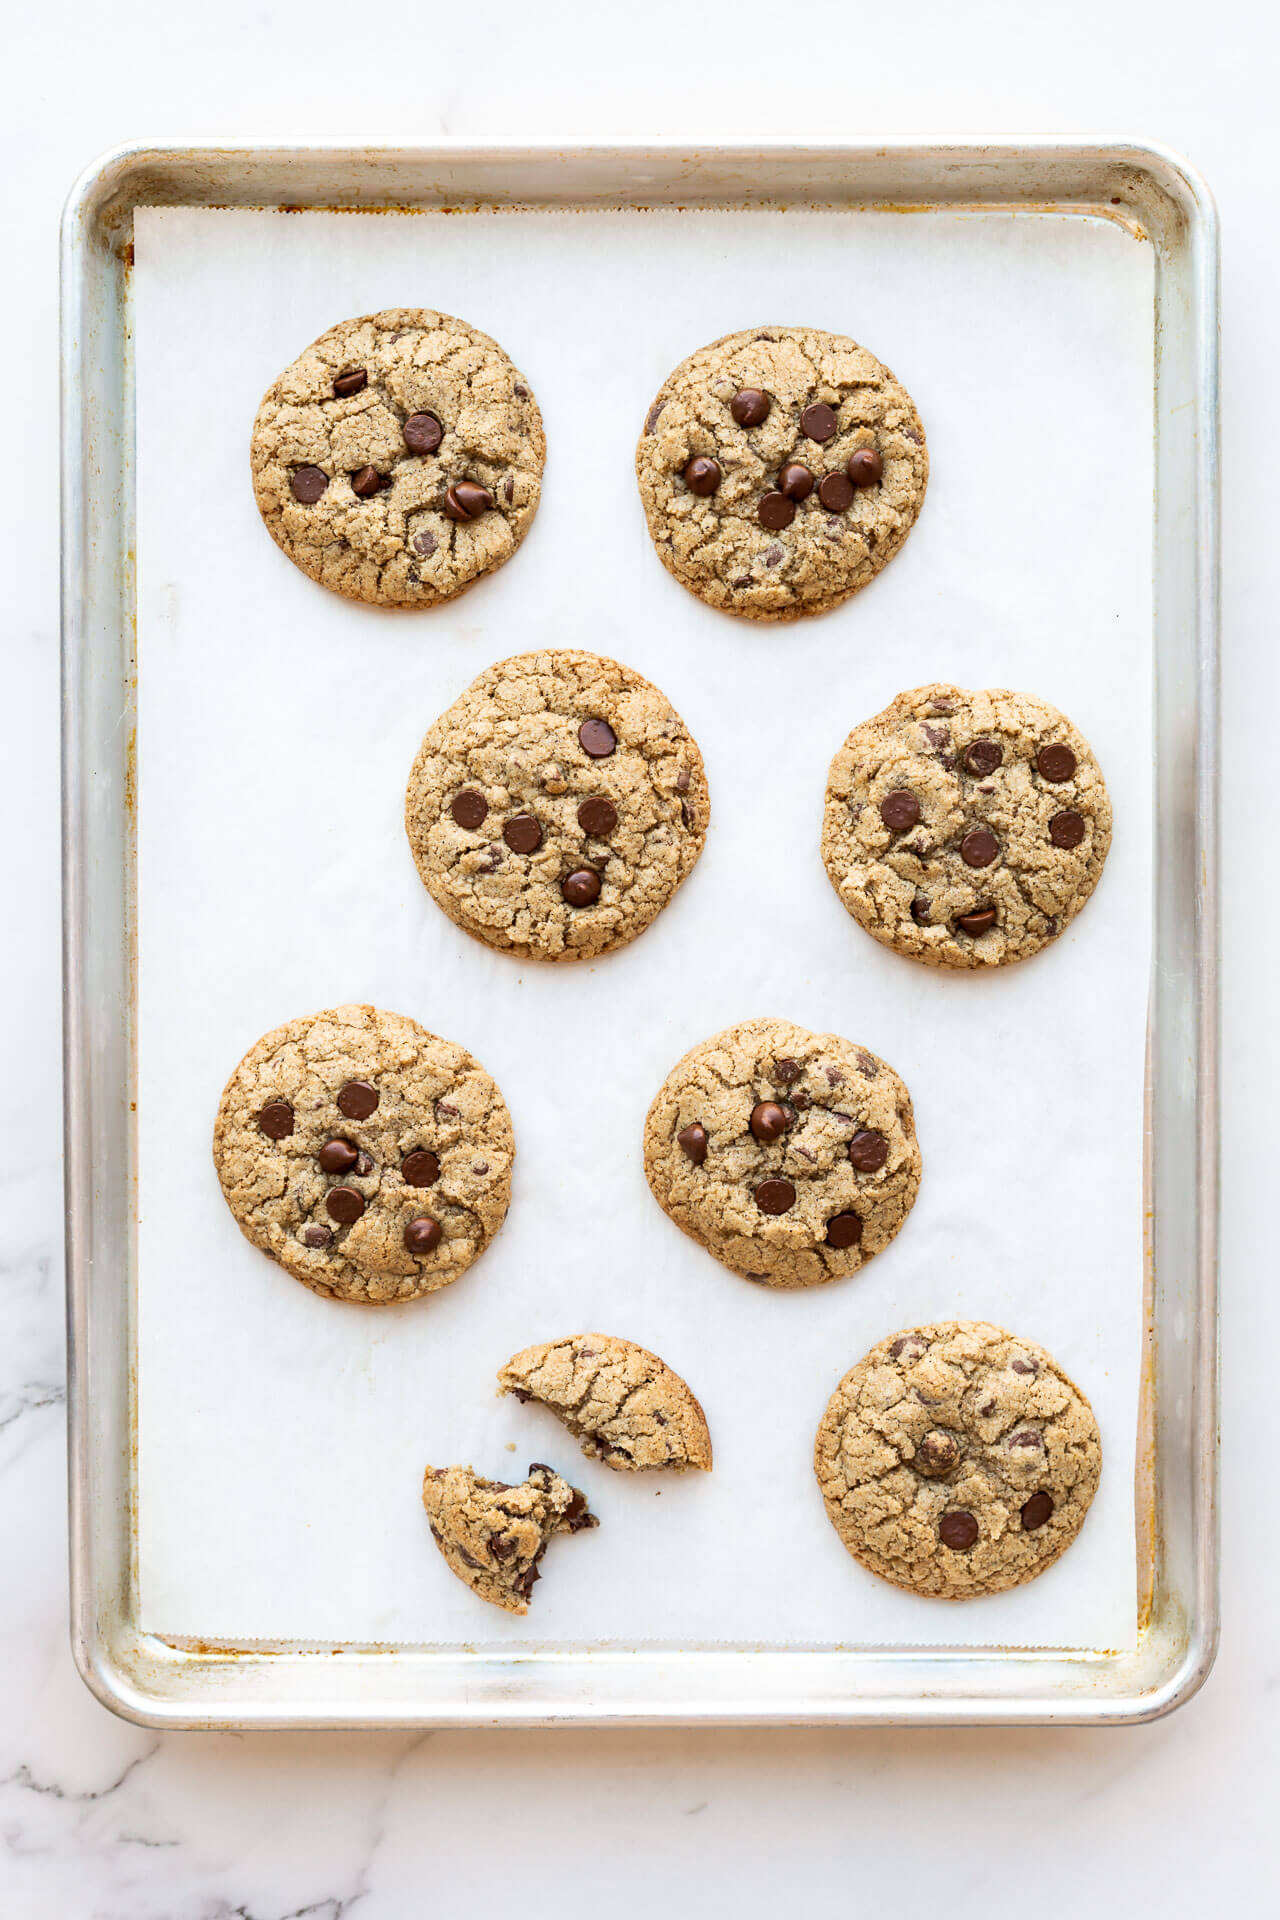 Thick chewy chocolate chip cookies made with buckwheat flour so they are a little greyer in colour compared to all-purpose flour and baked on a parchment lined sheet pan (8 cookies, one of which is broken in pieces)